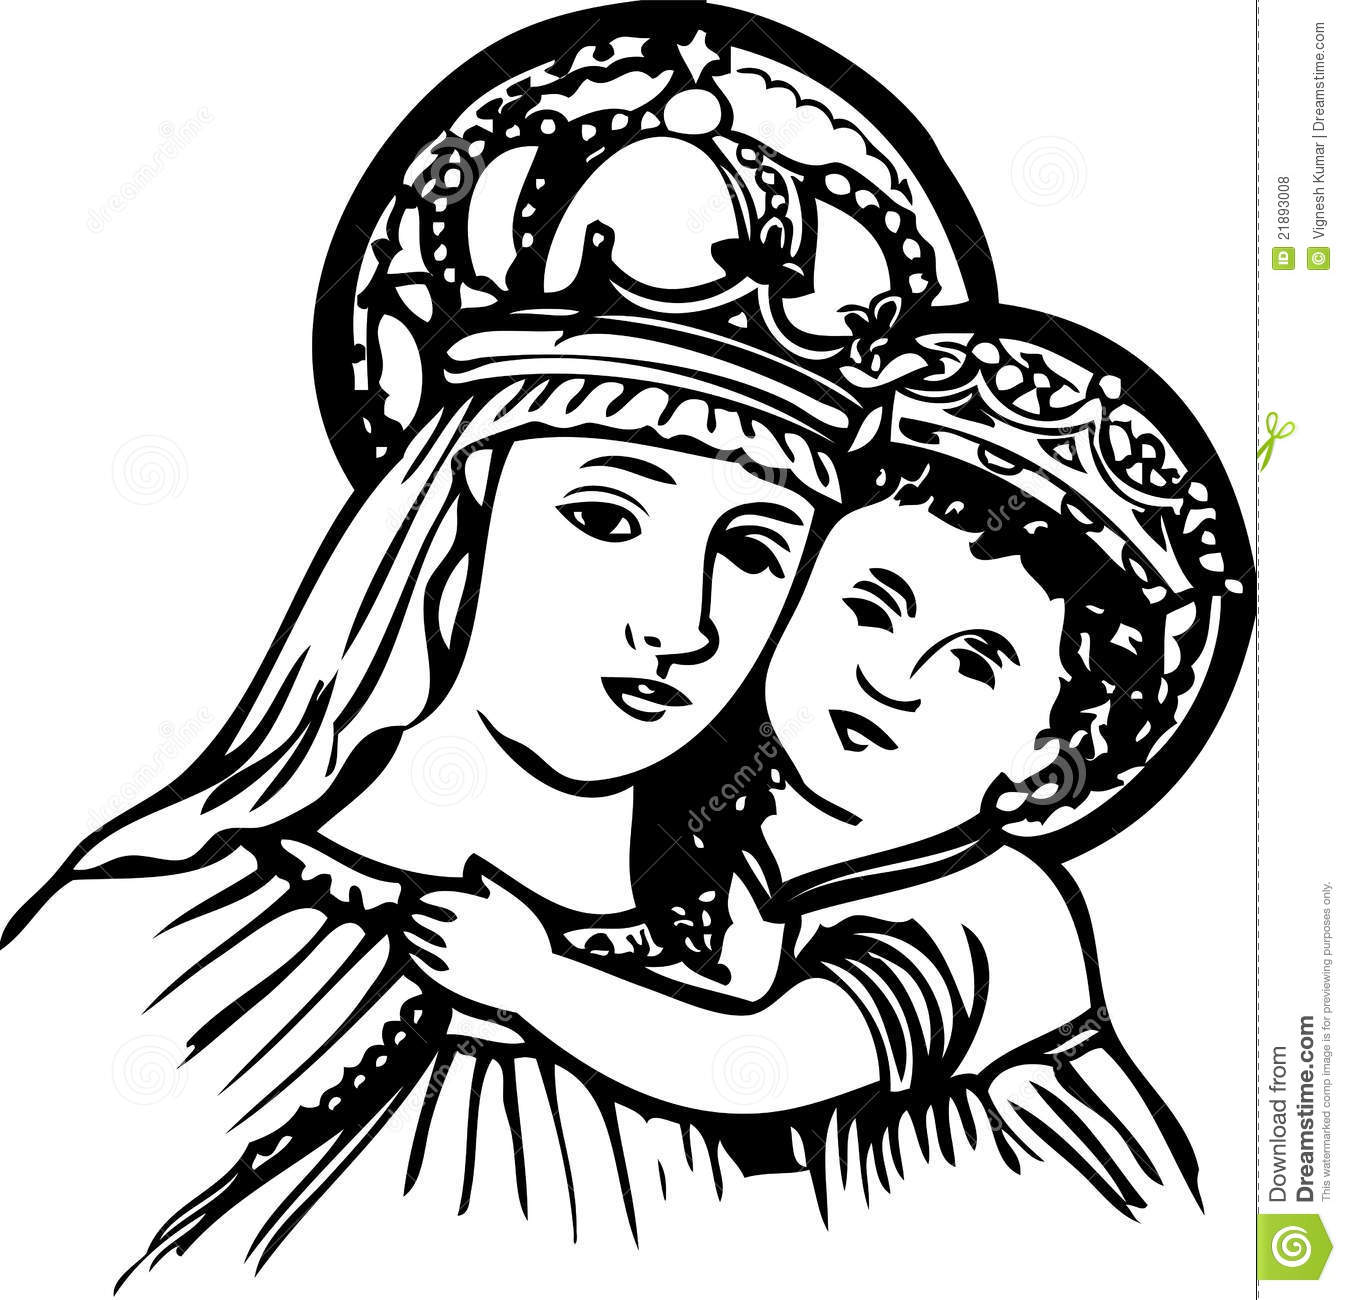 Jesus and mother mary clipart png transparent library Mary jesus mother clipart - ClipartFest png transparent library